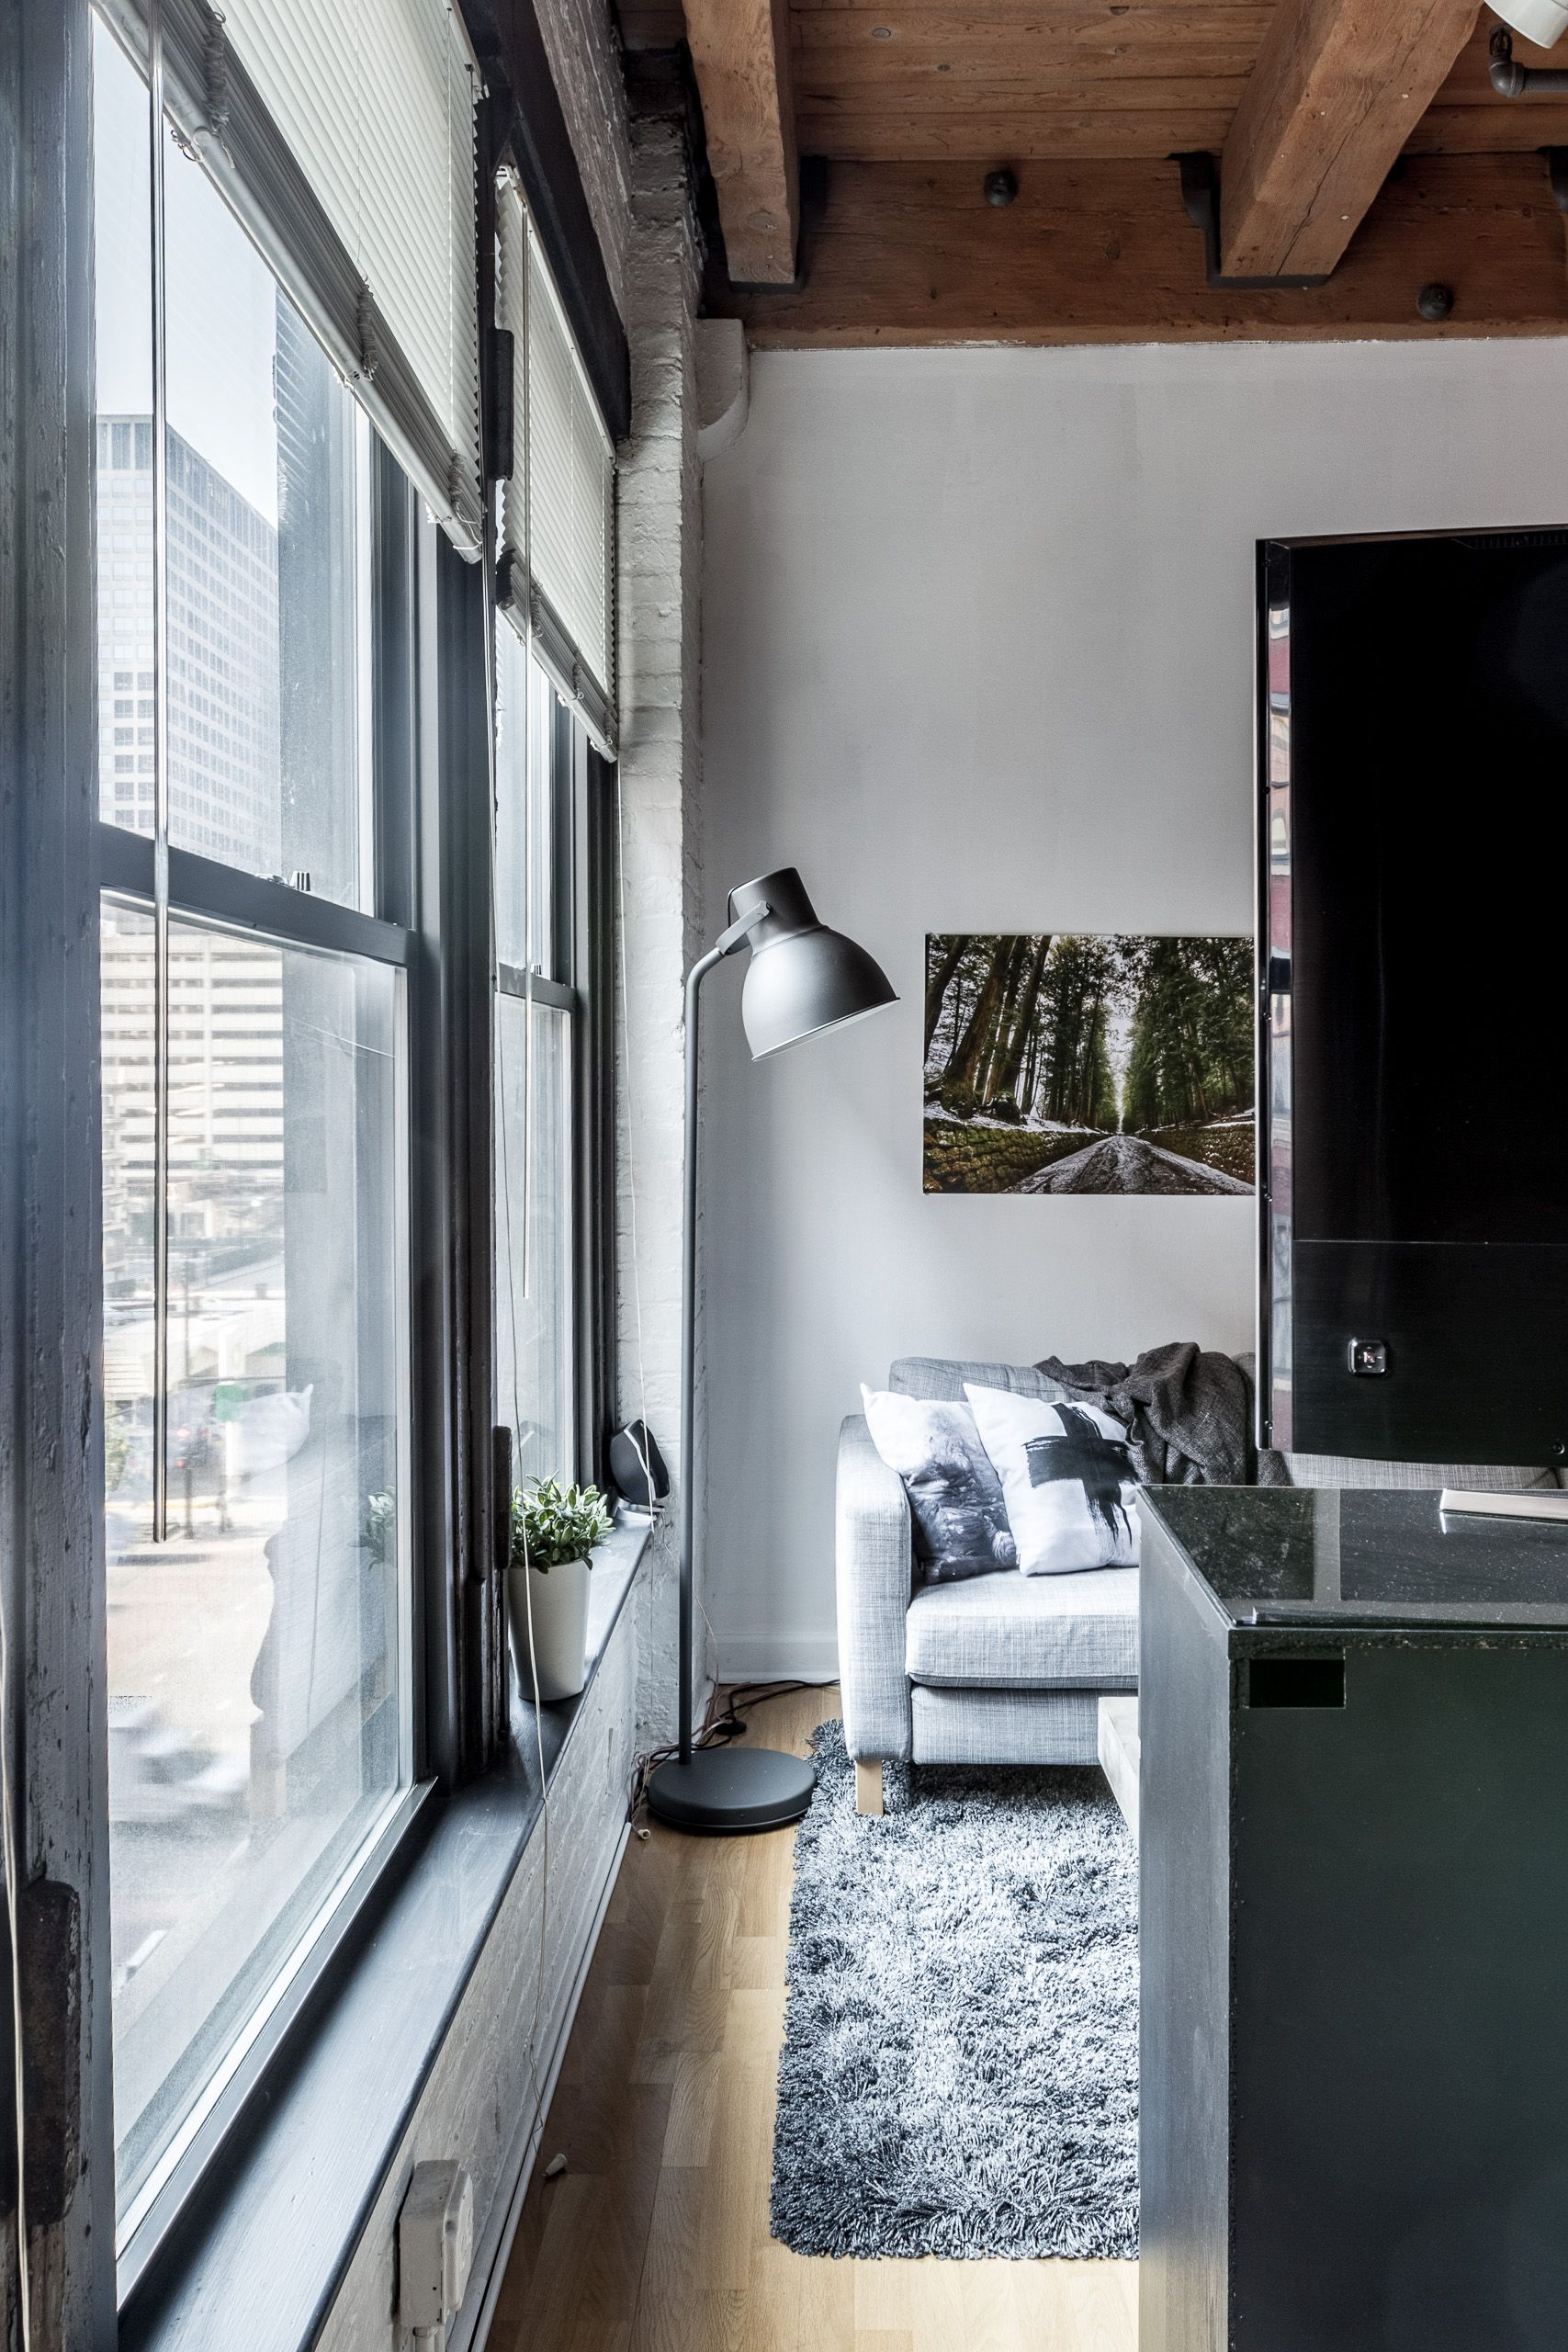 This Printers Row Loft Has 11 Foot Timber Ceilings, Large